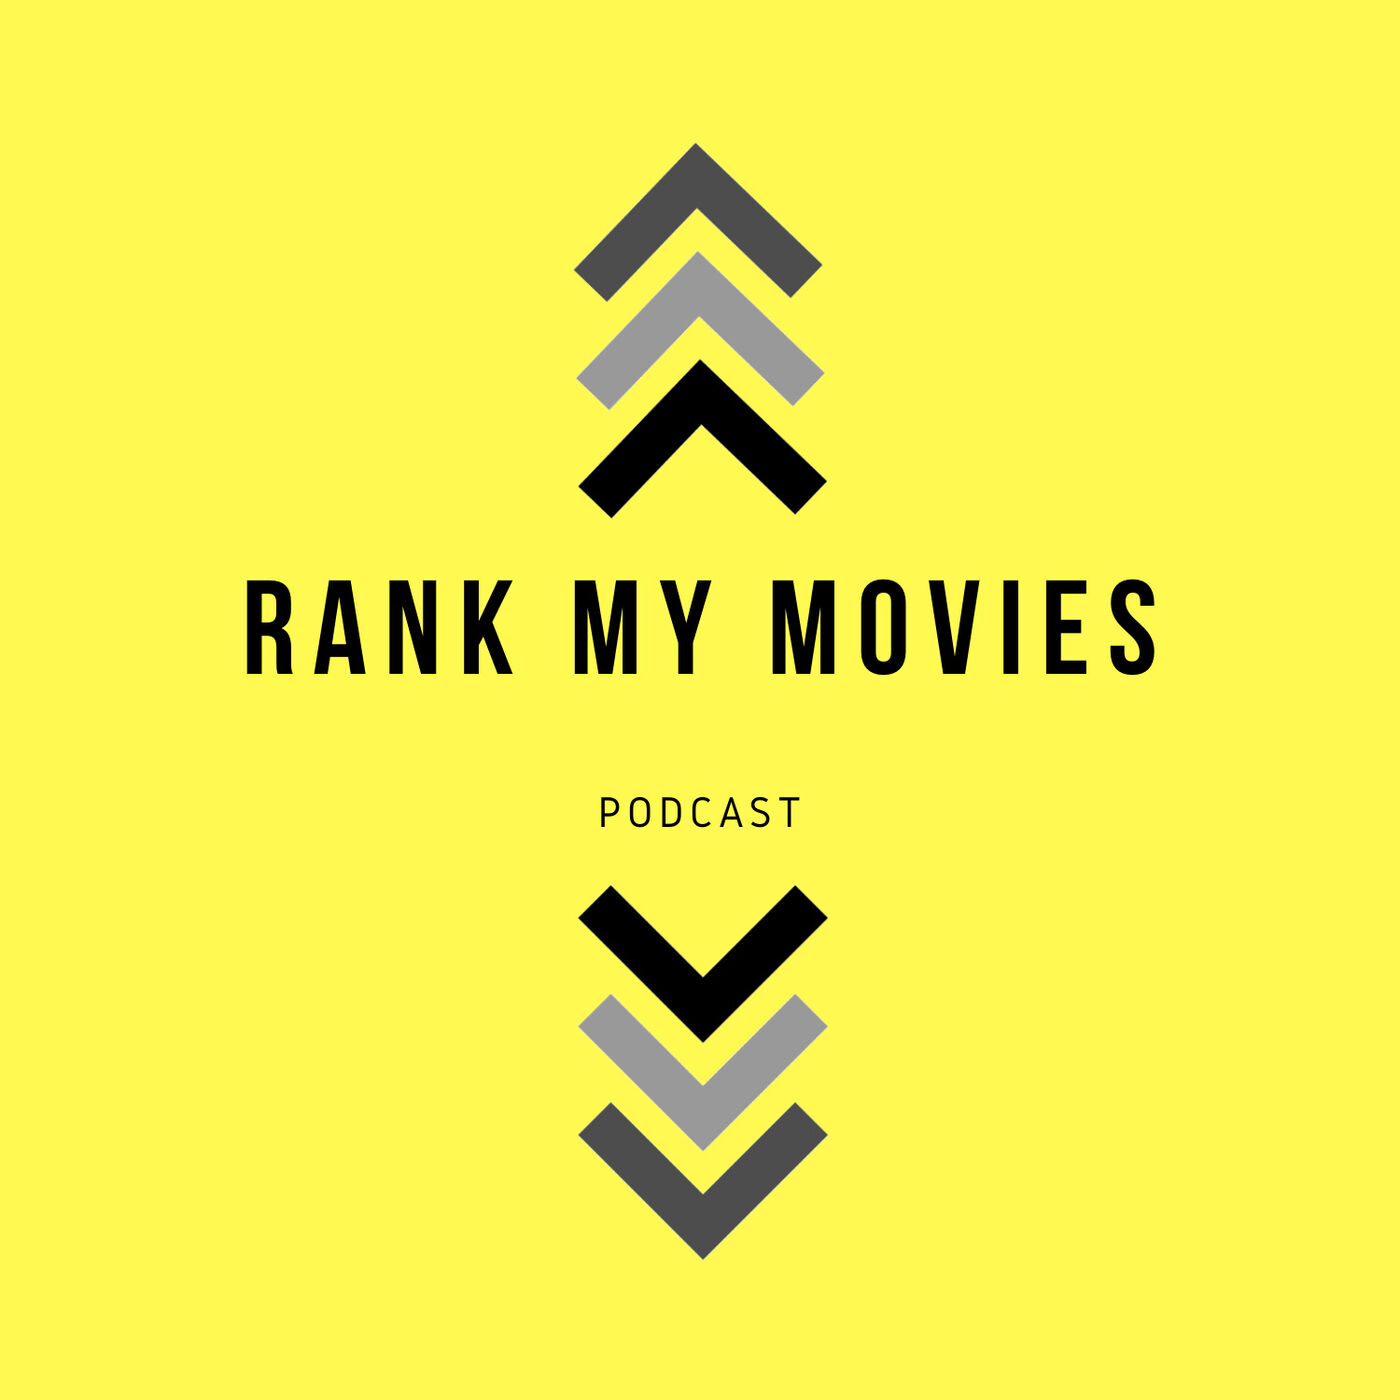 Rank My Movies podcast logo